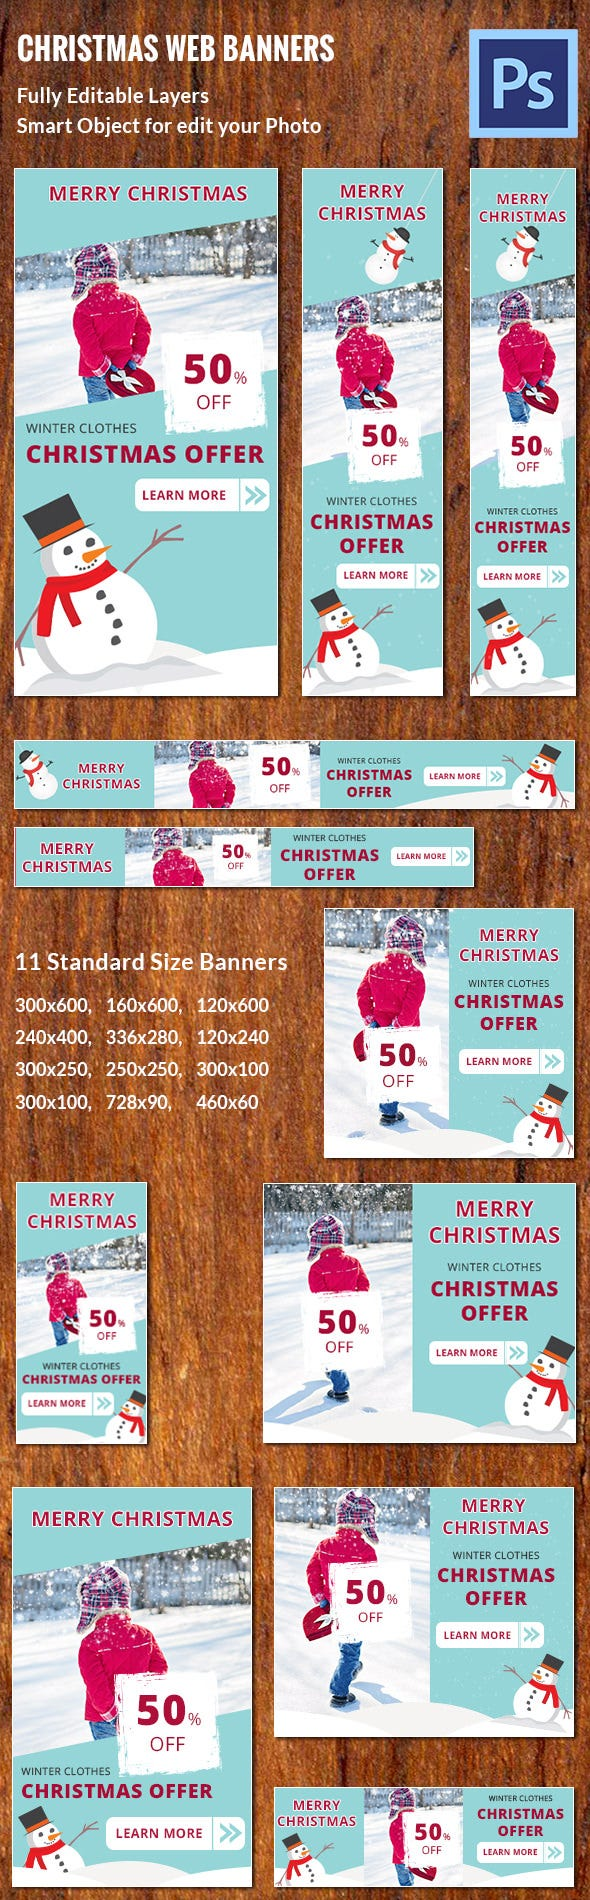 Printable & Customizable Christmas Banner Ad Template